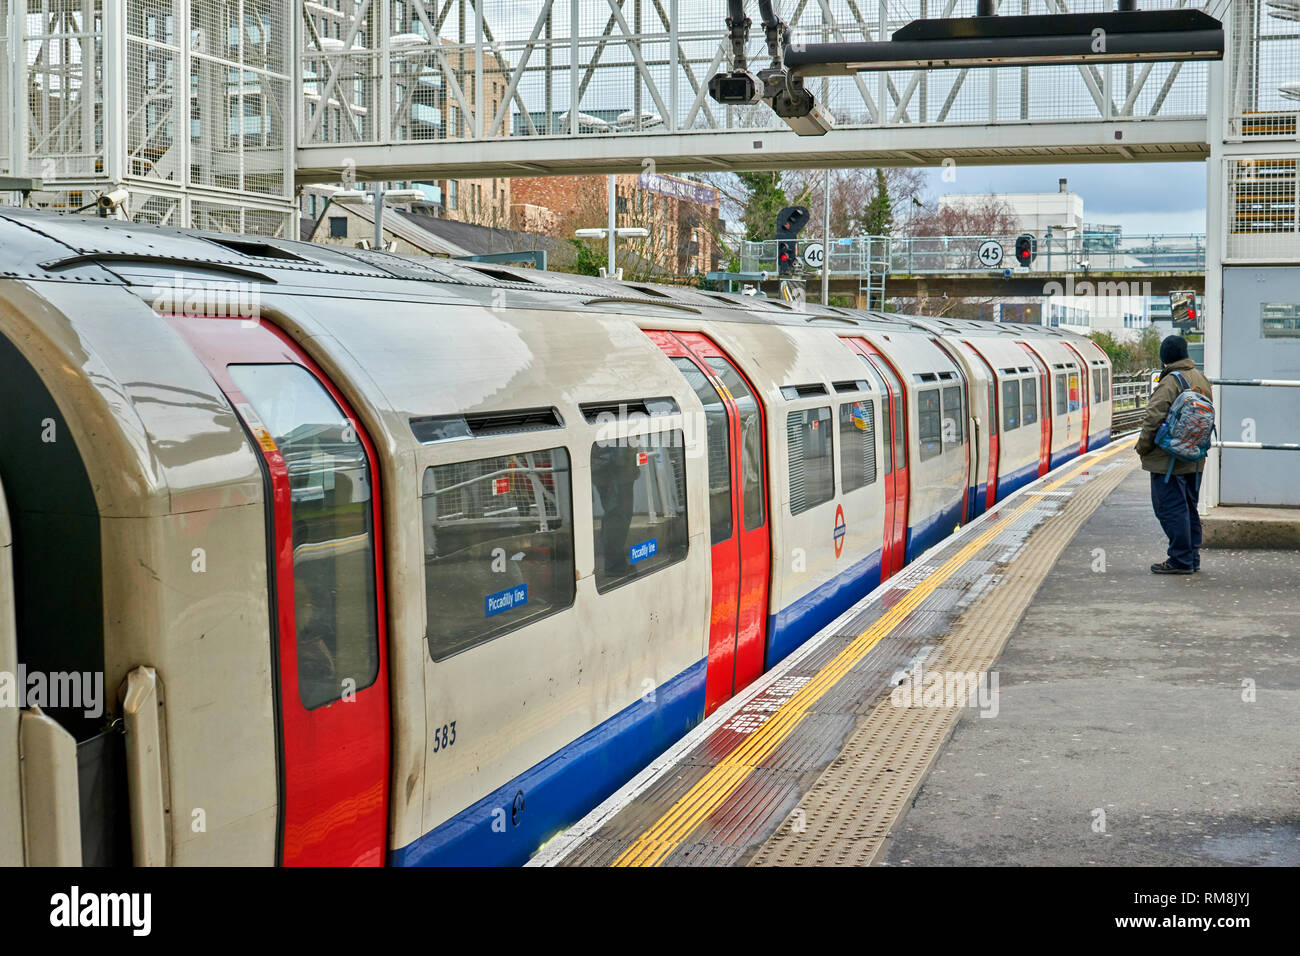 LONDON UNDERGROUND OR TUBE TRAIN PASSENGER WAITNG AT A STATION ON THE PICCADILLY LINE - Stock Image